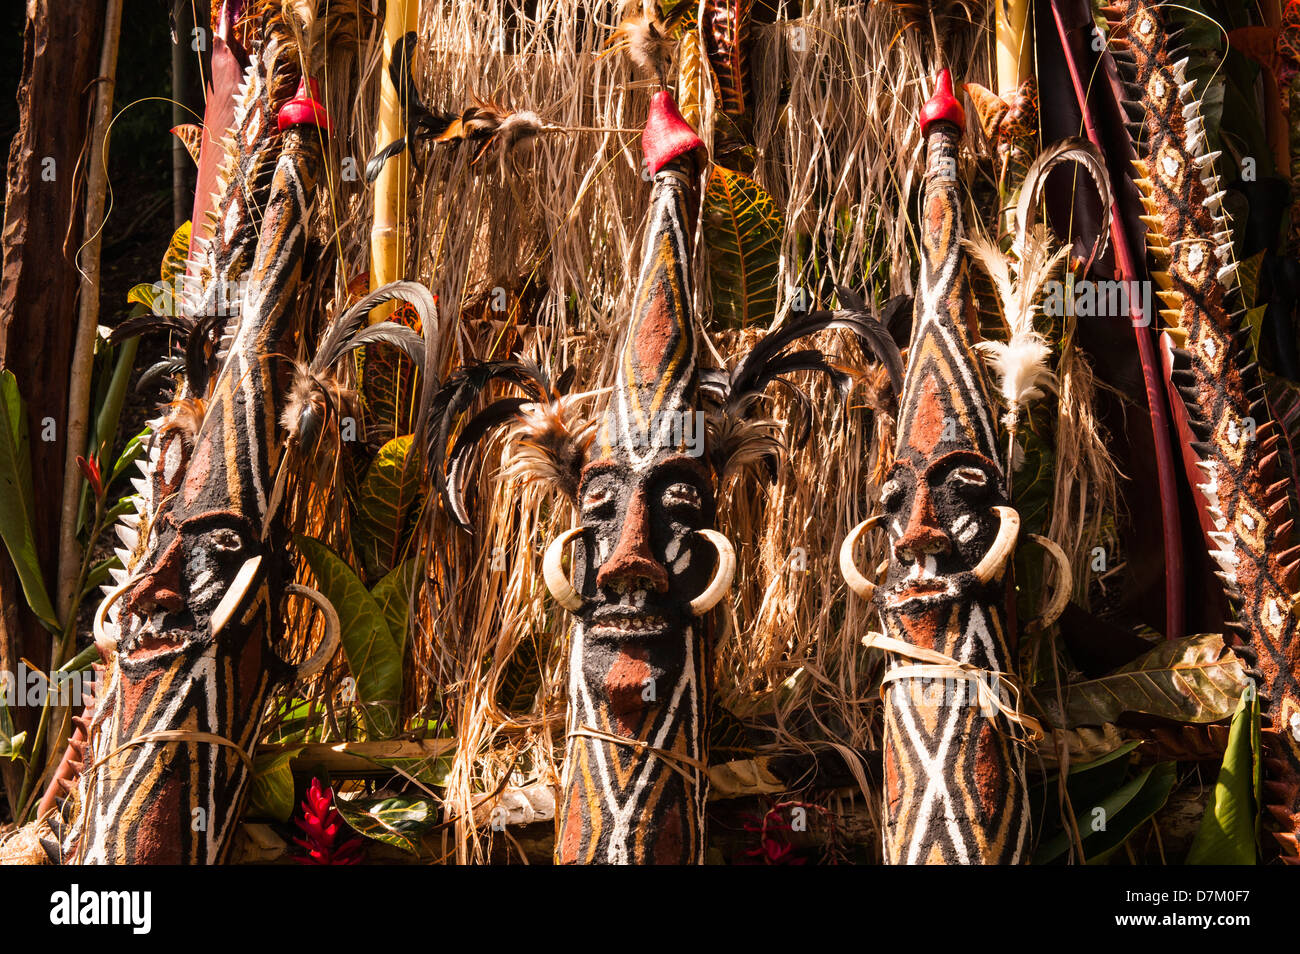 Carved wooden figures decorate the outside of a wooden tower built for the Ordination ceremony of a village chief - Stock Image